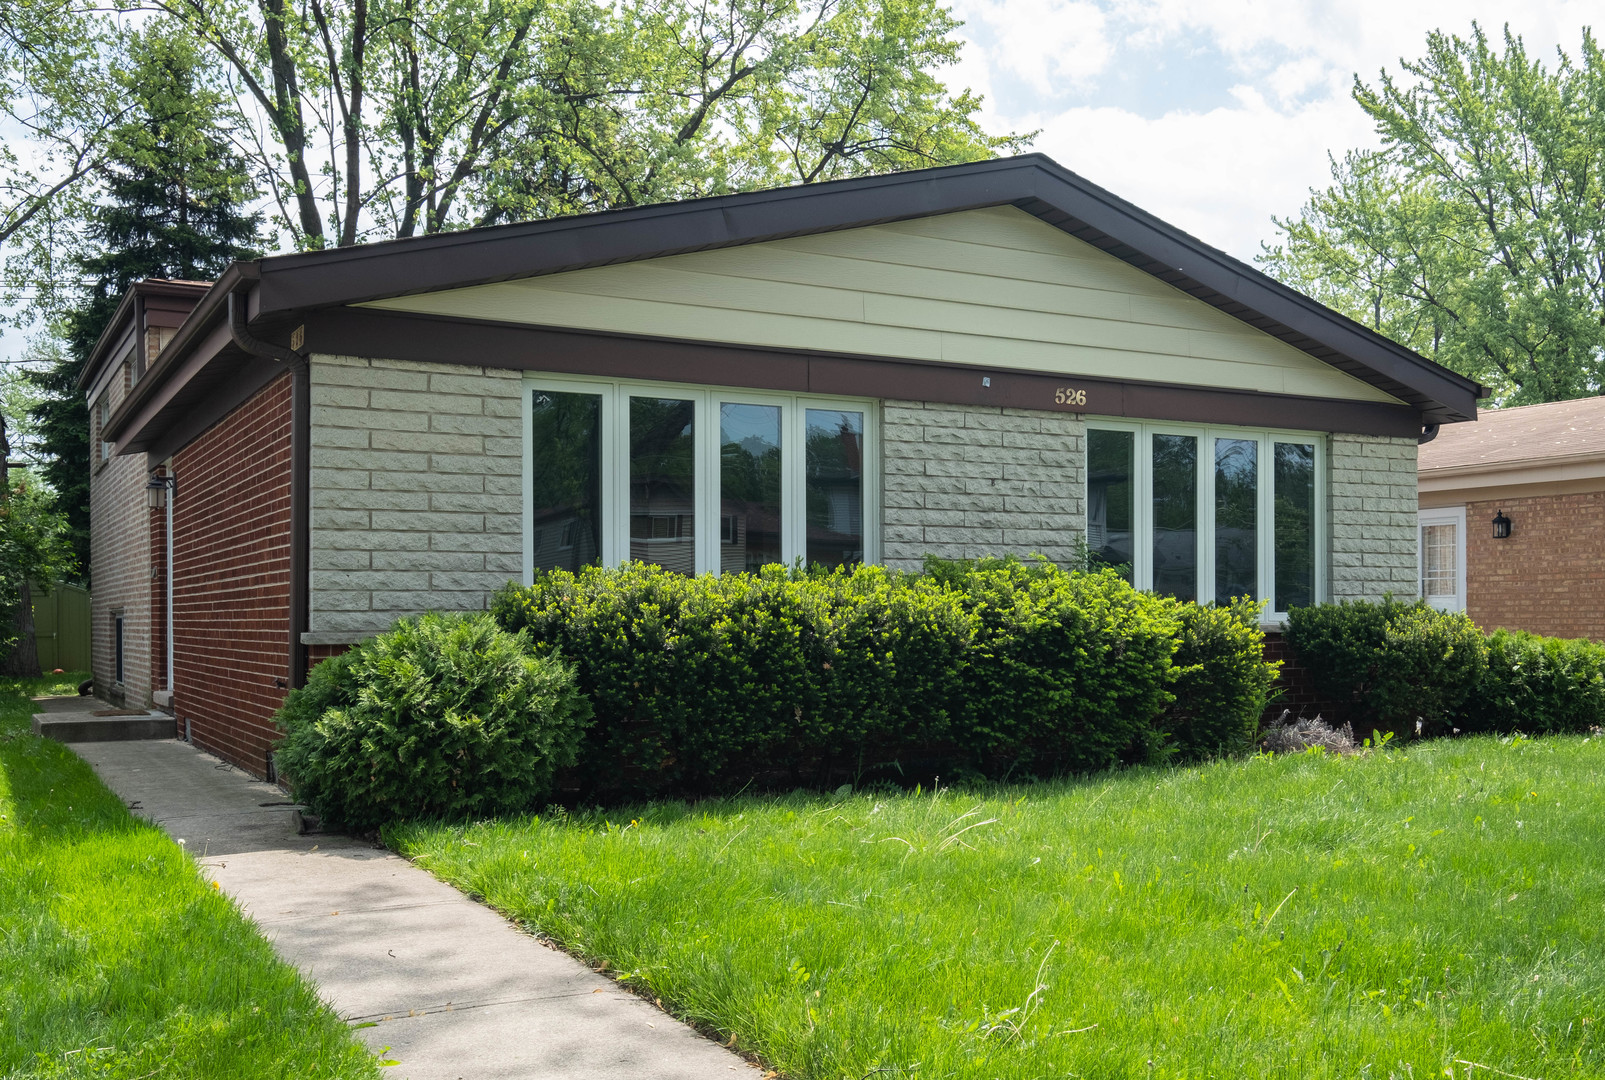 526 Leamington Avenue   WILMETTE Illinois 60091